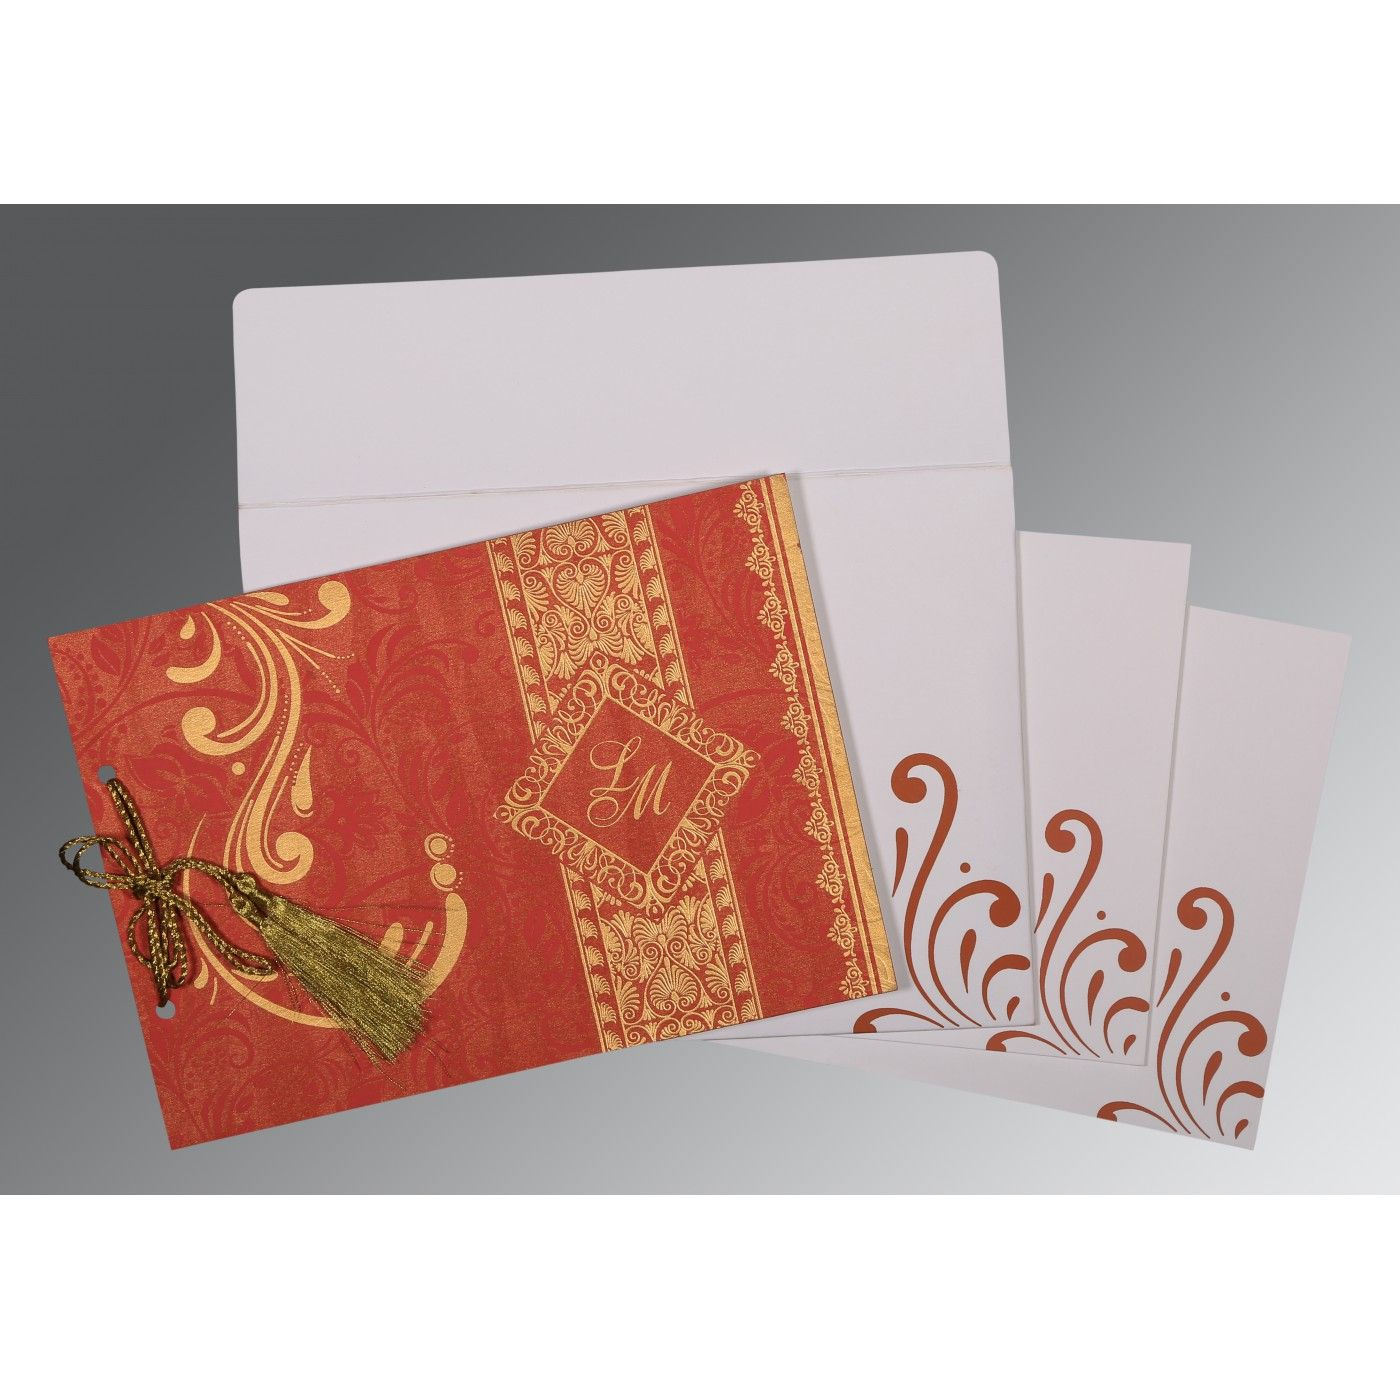 BURNT ORANGE SHIMMERY SCREEN PRINTED WEDDING CARD : CIN-8223C - IndianWeddingCards